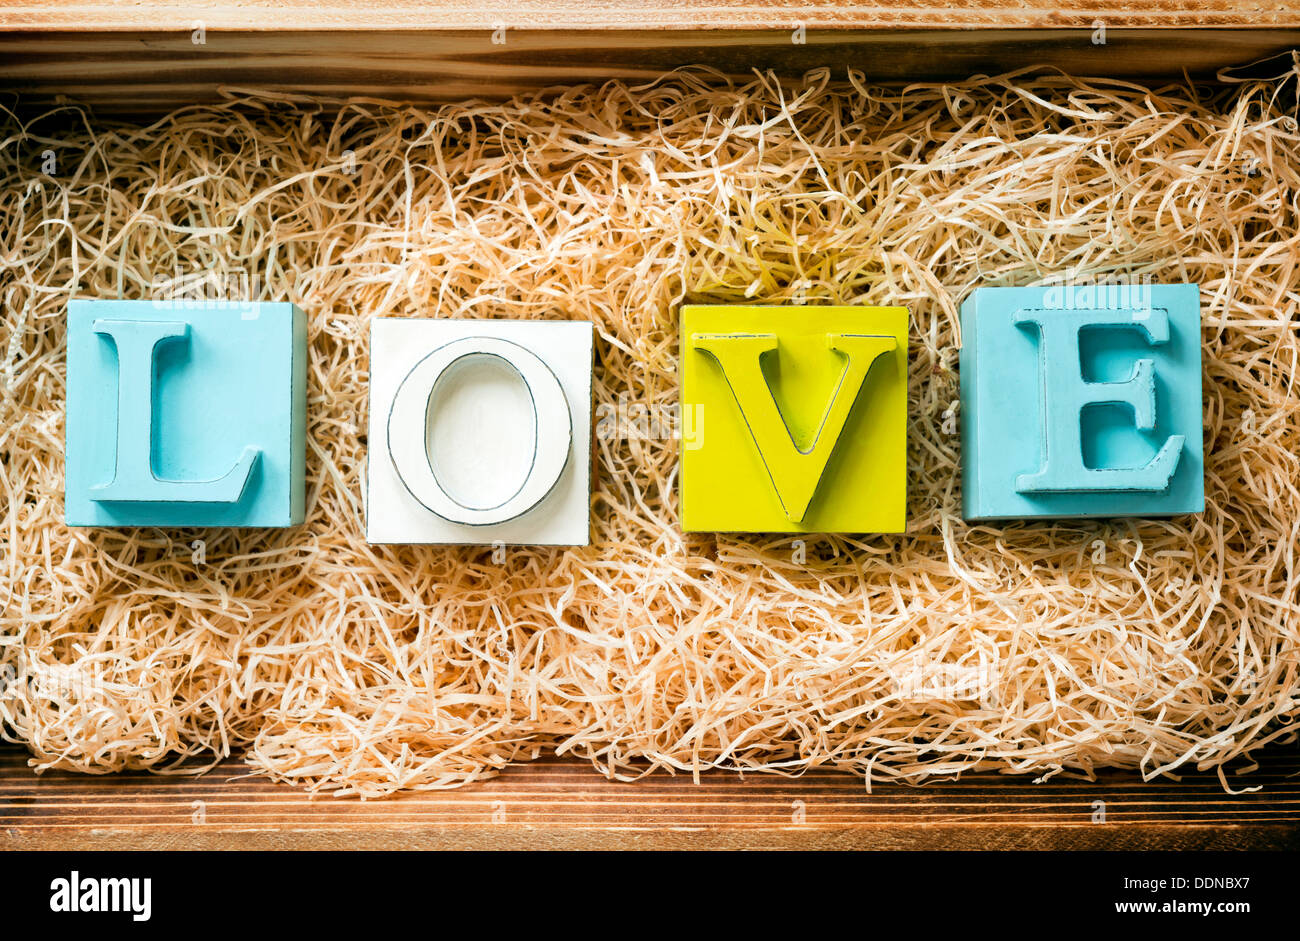 The Word Love Spelled Out In Big Block Letters A Wooden Gift Box Filled With Raffia